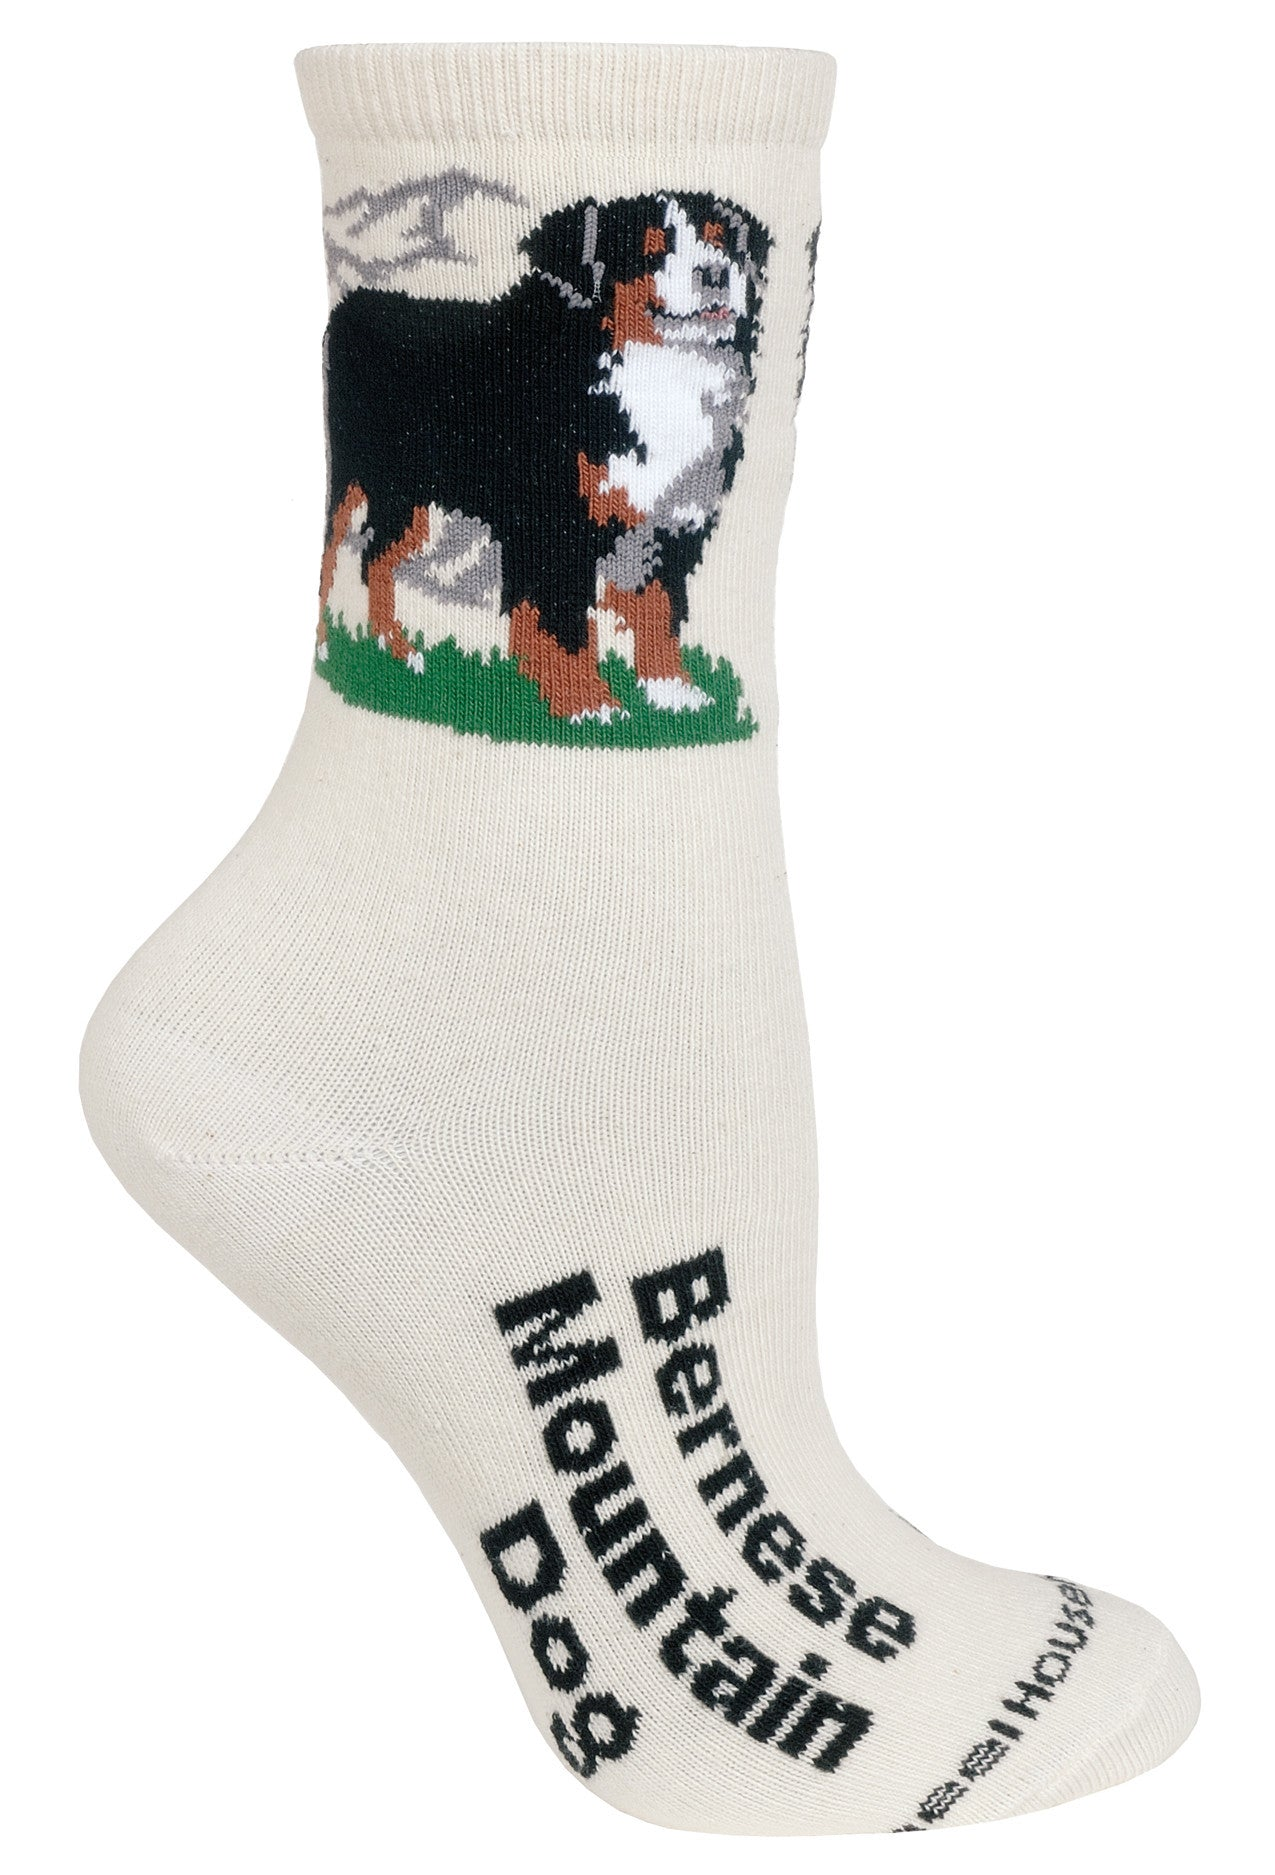 Bernese Mountain Dog on Natural Socks